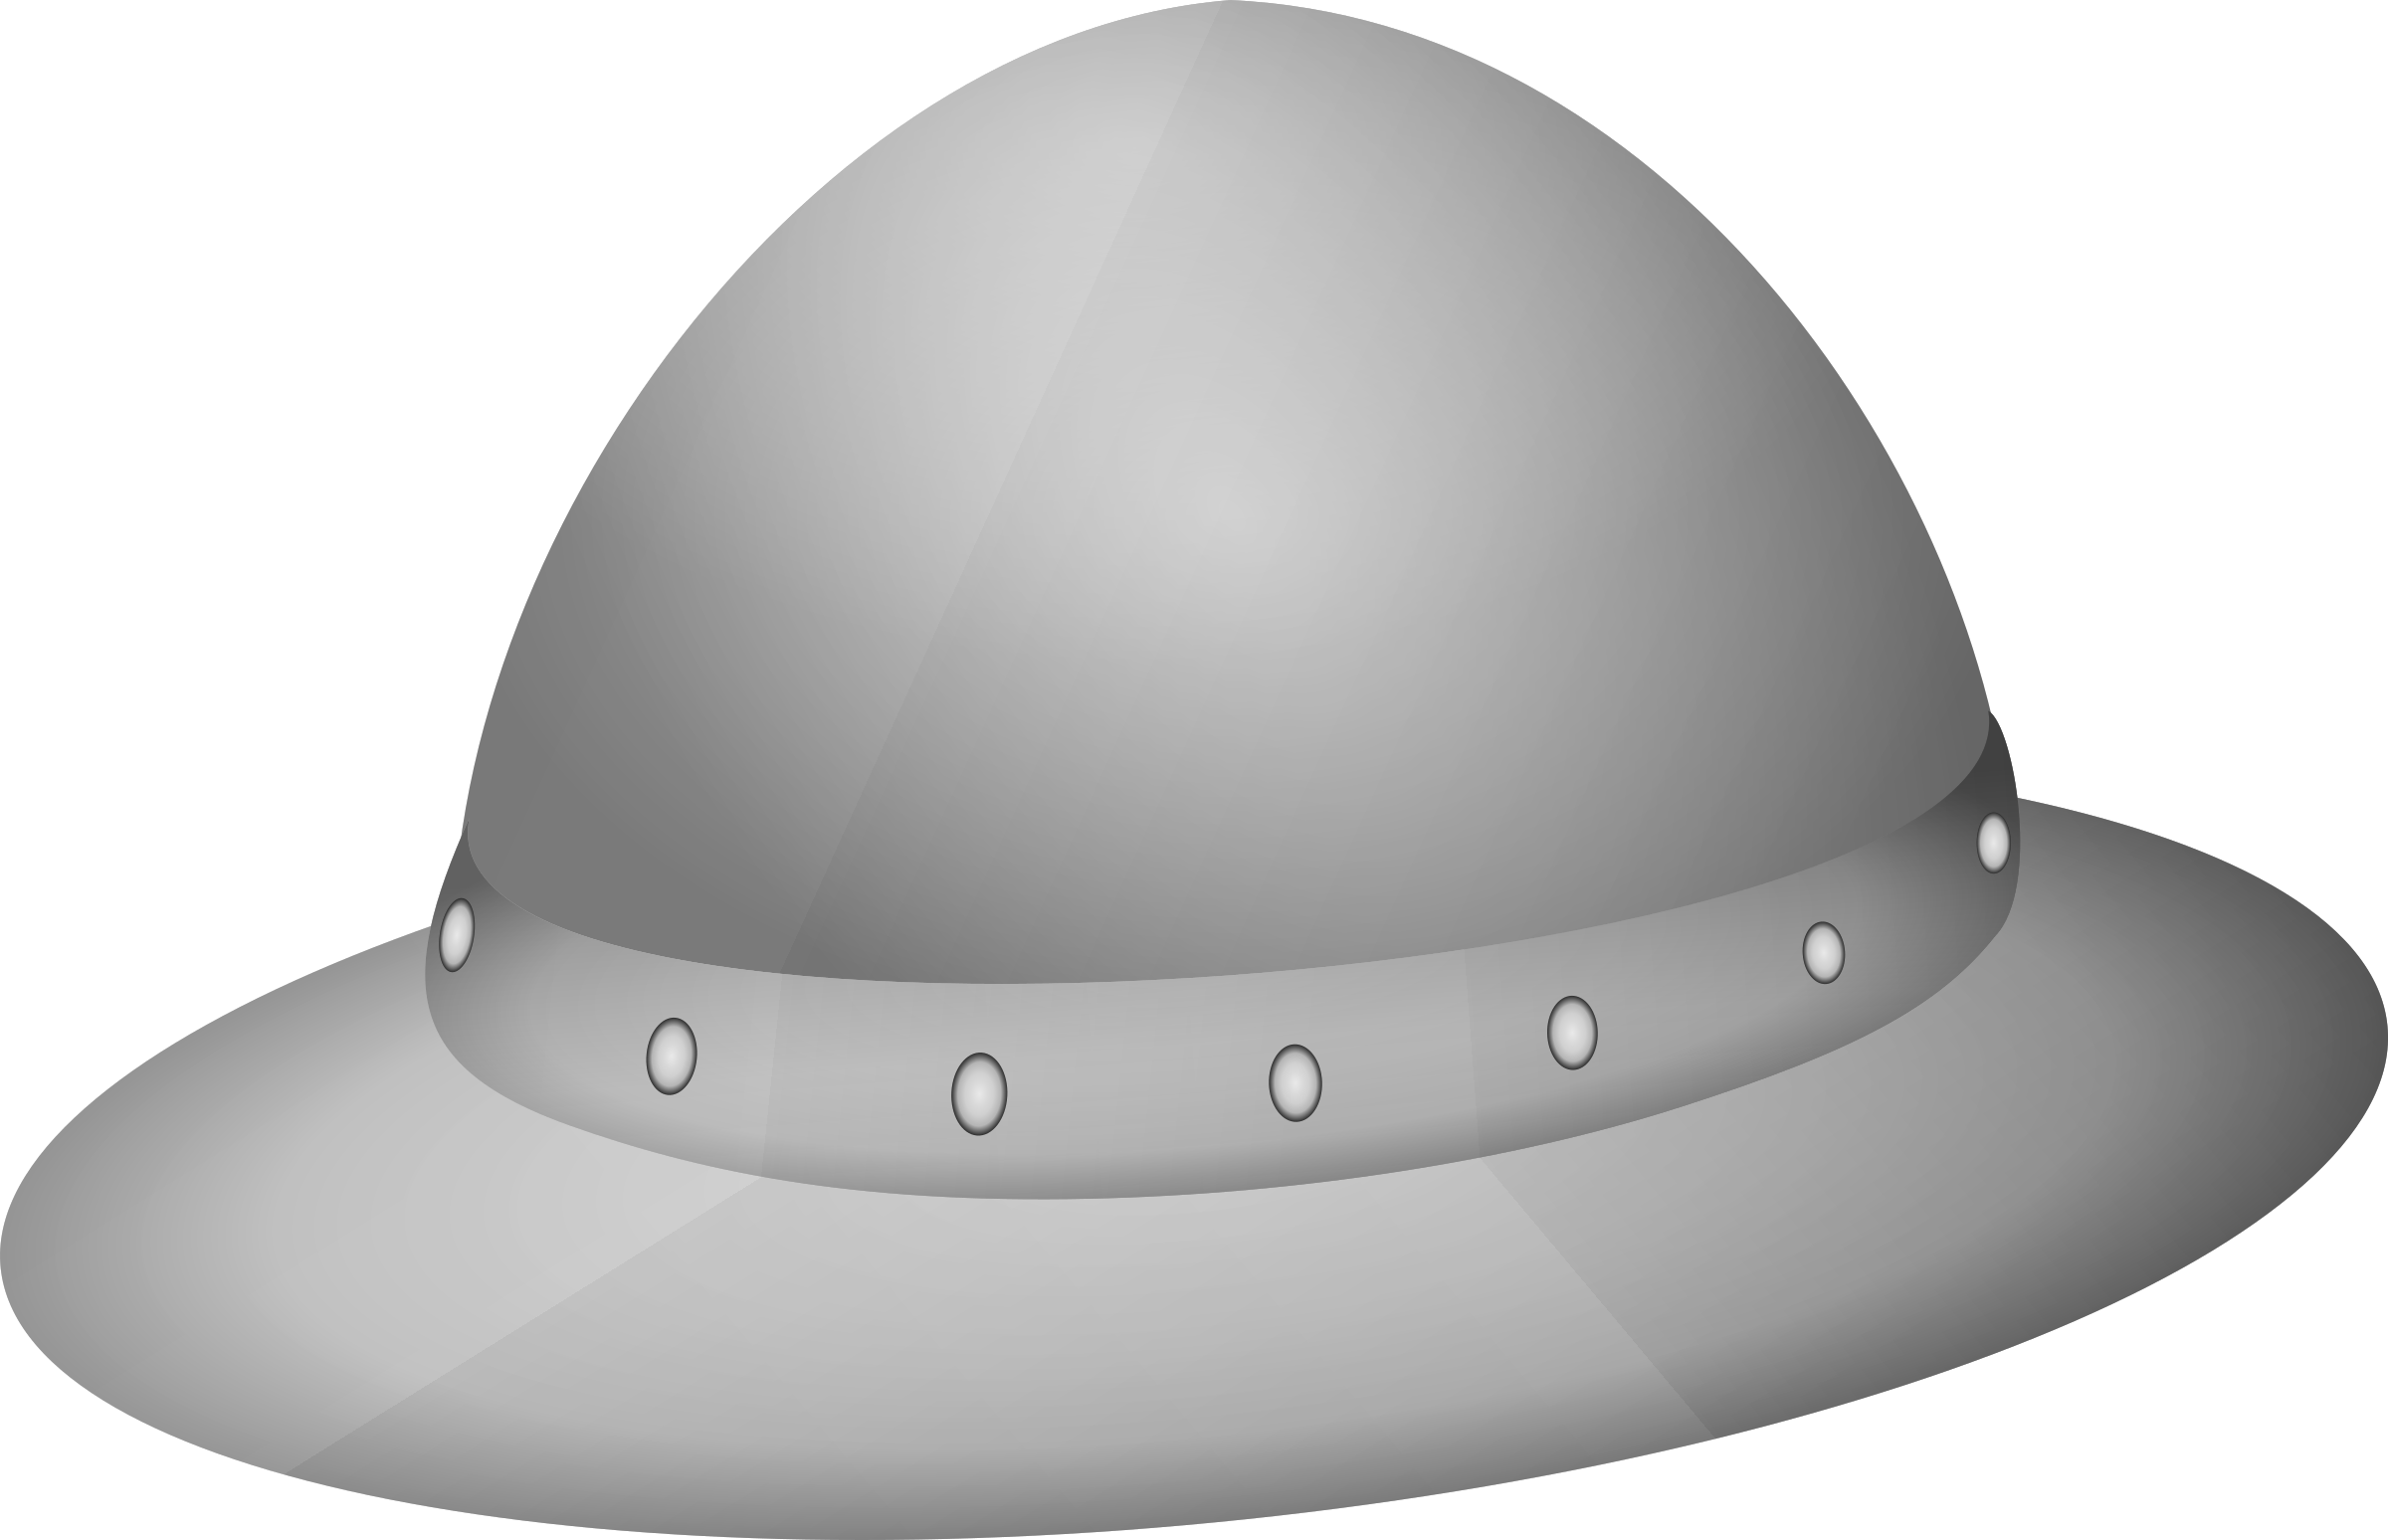 The kettle hat/helmet by Gribba